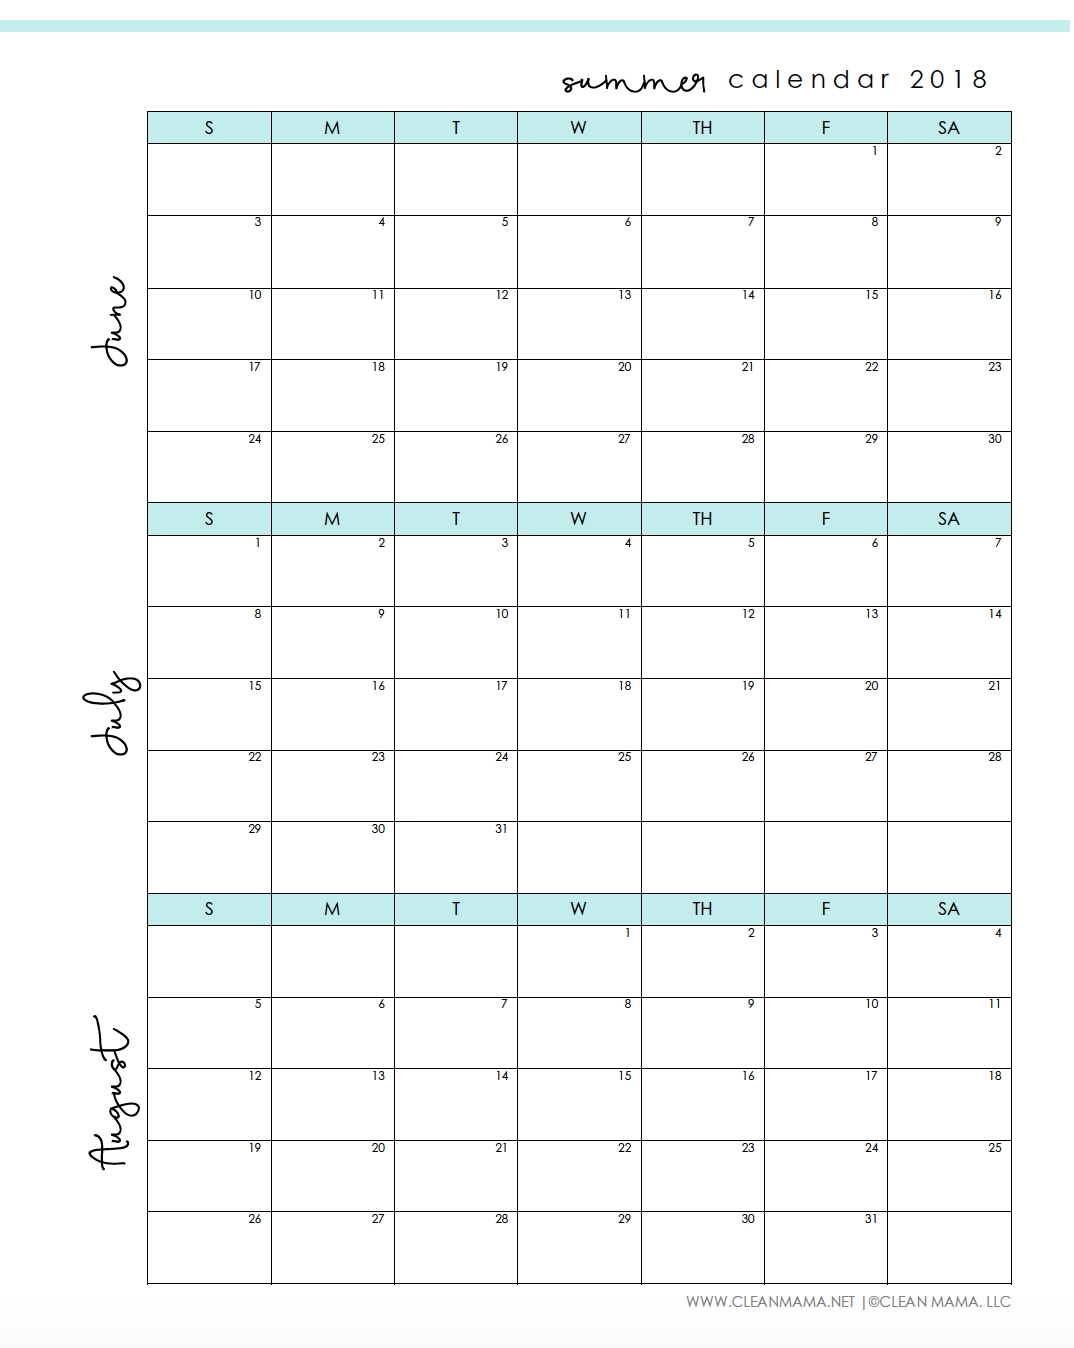 Free Printable : Summer 2018 Calendar - Clean Mama C Program To Print Calendar Of Month July